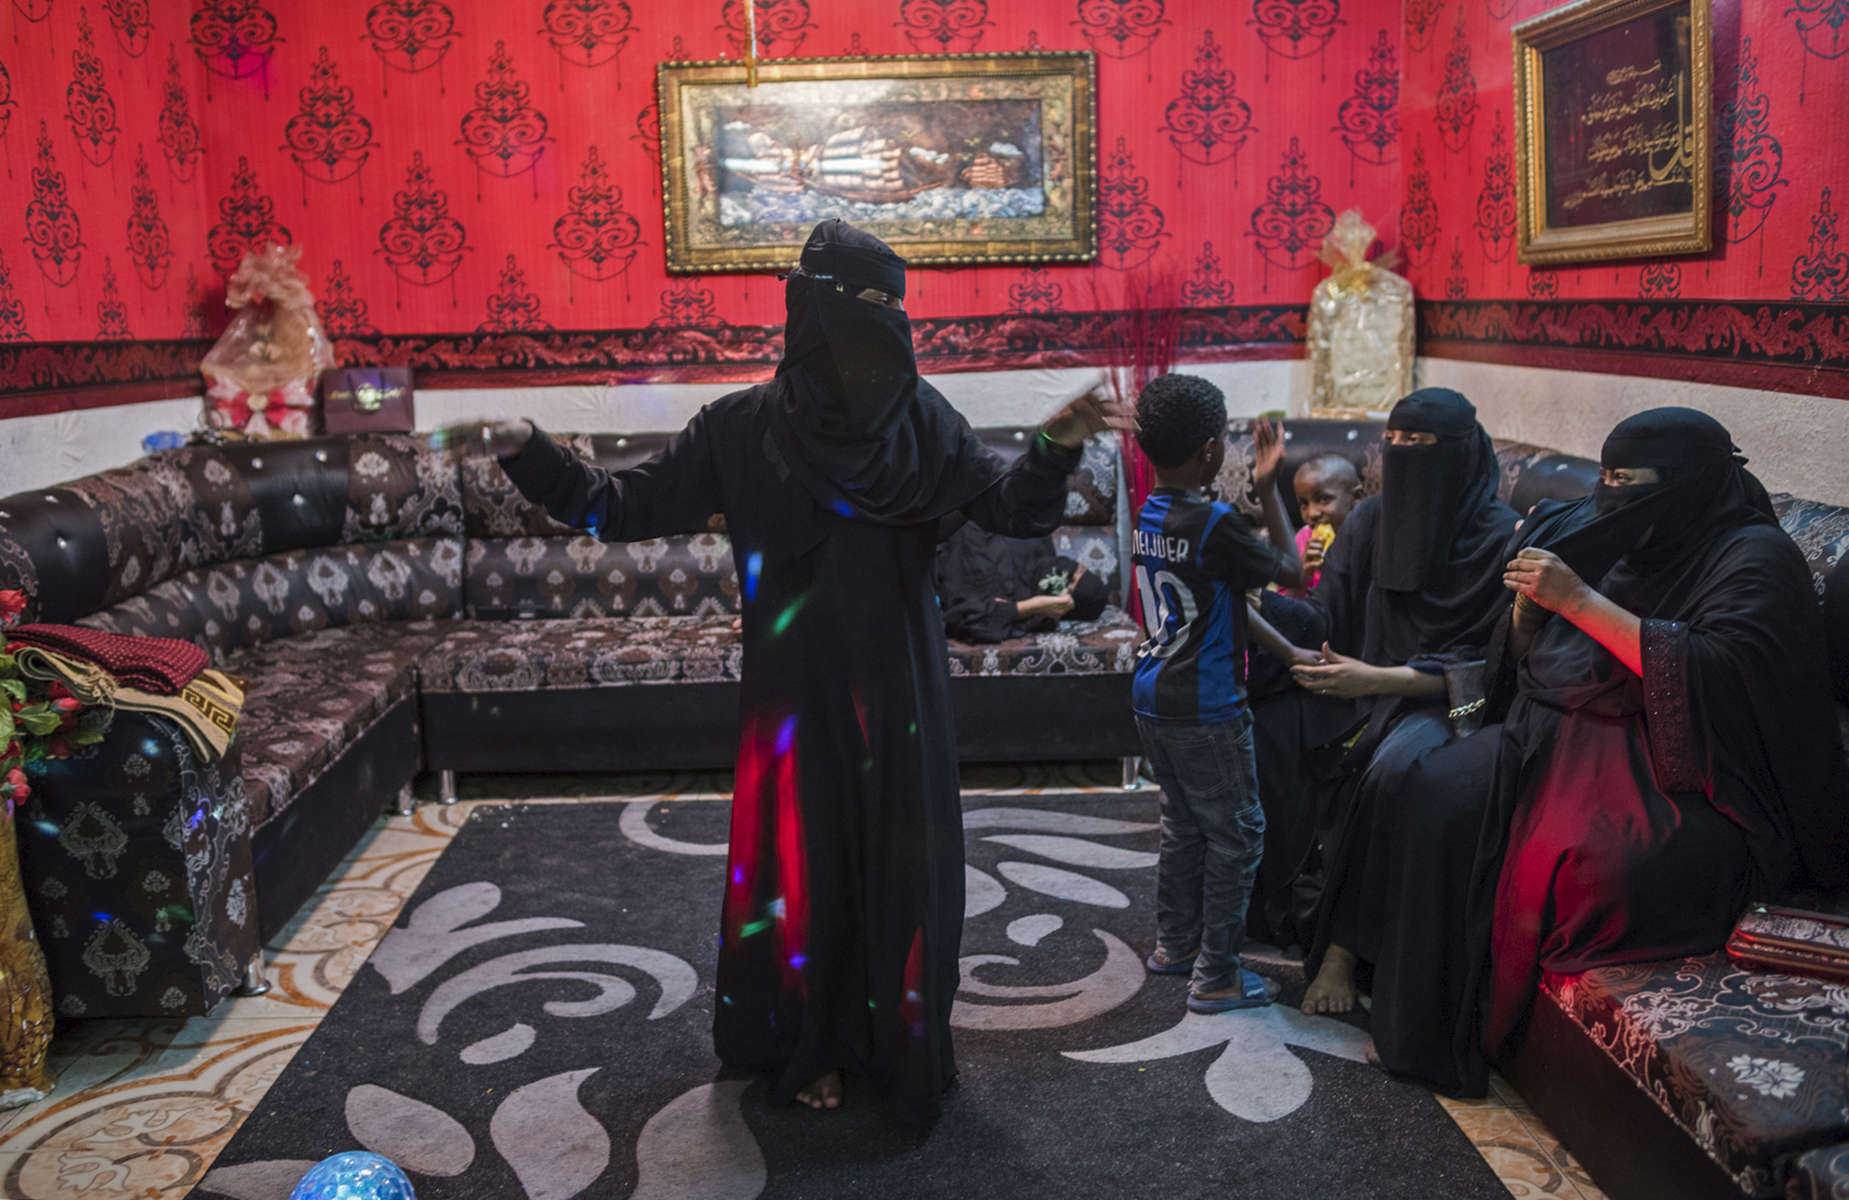 Khadija's son, Ali, dances to American hip hop music as his female relatives watch the day after he returned home from military duty in the eastern province for a vacation in Riyadh, Saudi Arabia, March 20, 2015.